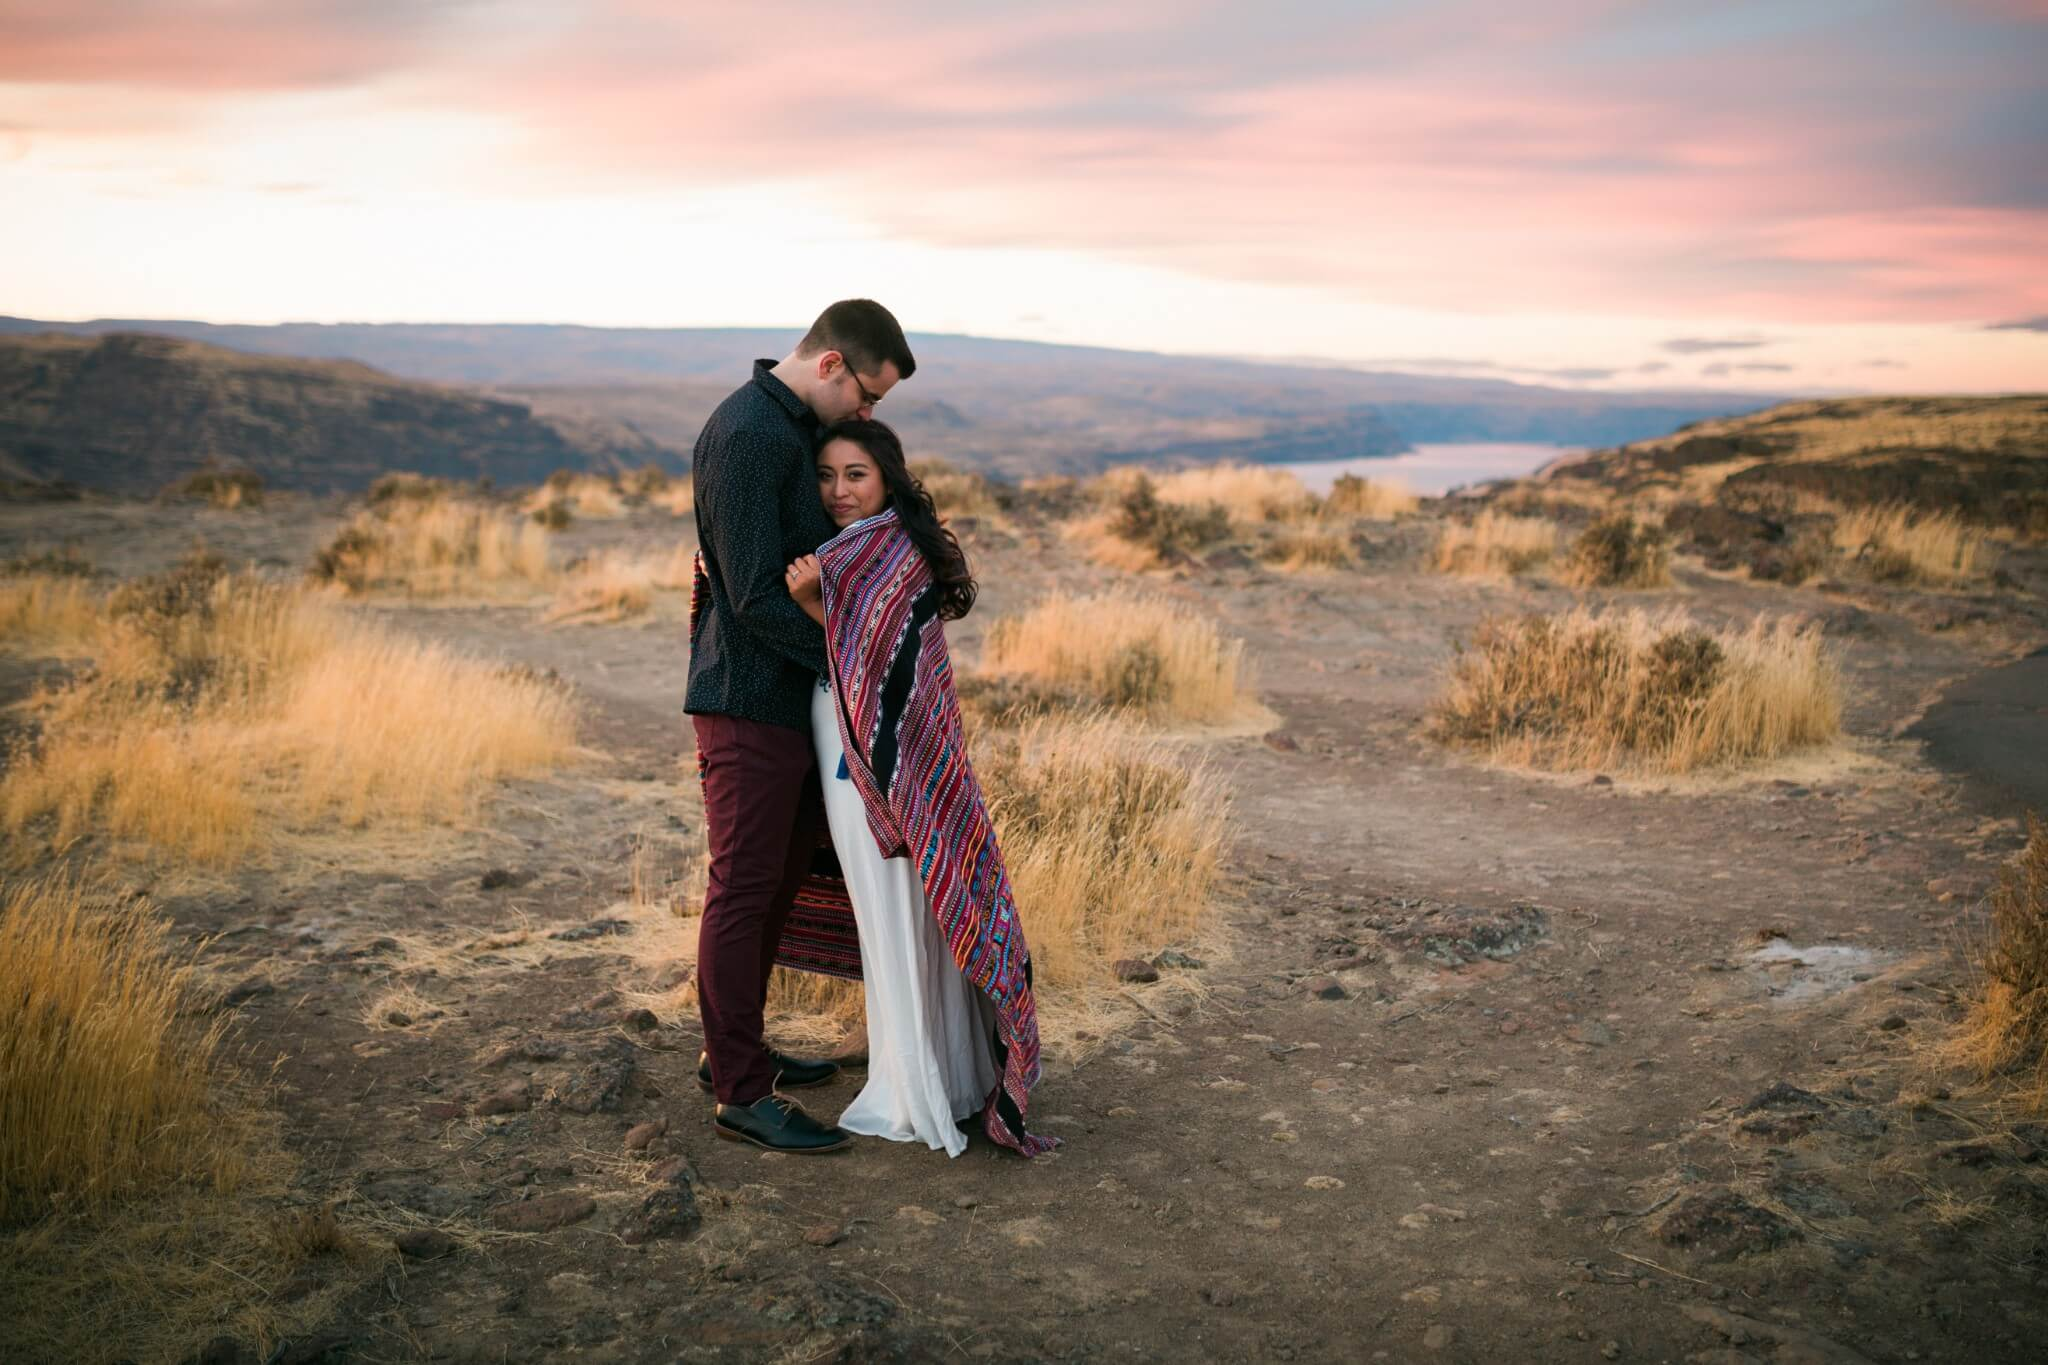 Lesly & Michael Vantage Engagement by Bill Weisgerber Spokane Photographer (65 of 71).jpg